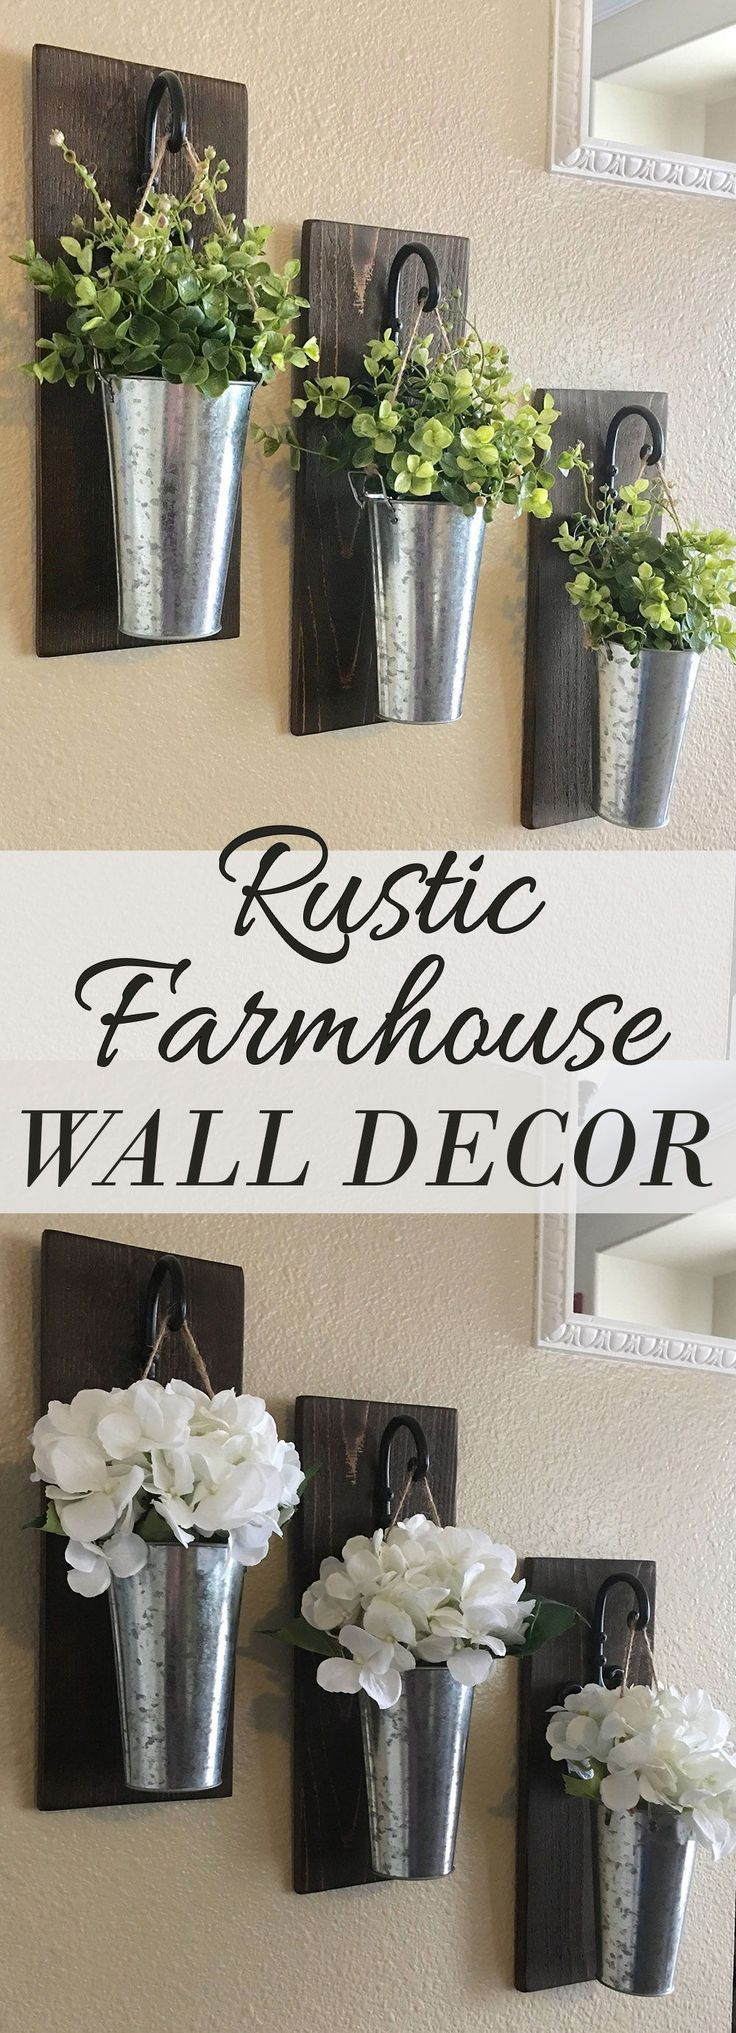 Rustic Wall Decor, Rustic Decor, Farmhouse Wall Decor, Wall Decor, Home Decor, Galvanized Wall Decor, Metal Wall Decor, Hanging Planter These hanging planters are so neat! They would look fantastic on my entryway wall as well as in my dining room or living room. I love rustic farmhouse decor! Great and easy to make DIY project for the home and looks really beautiful!